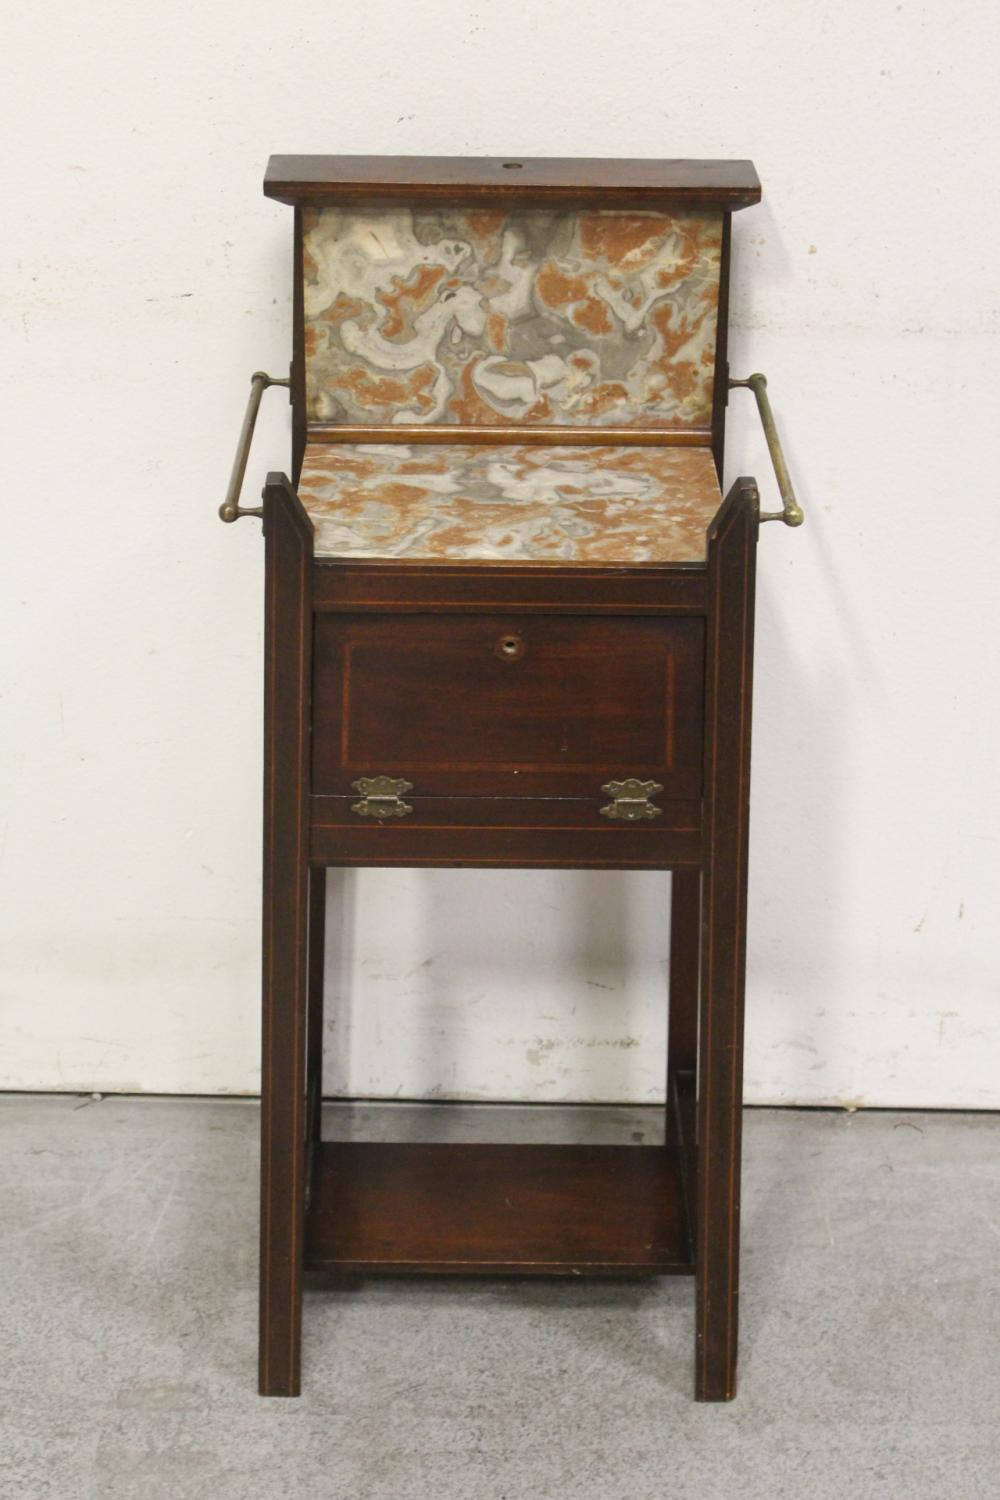 English inlaid mahogany & marble washstand/humidor